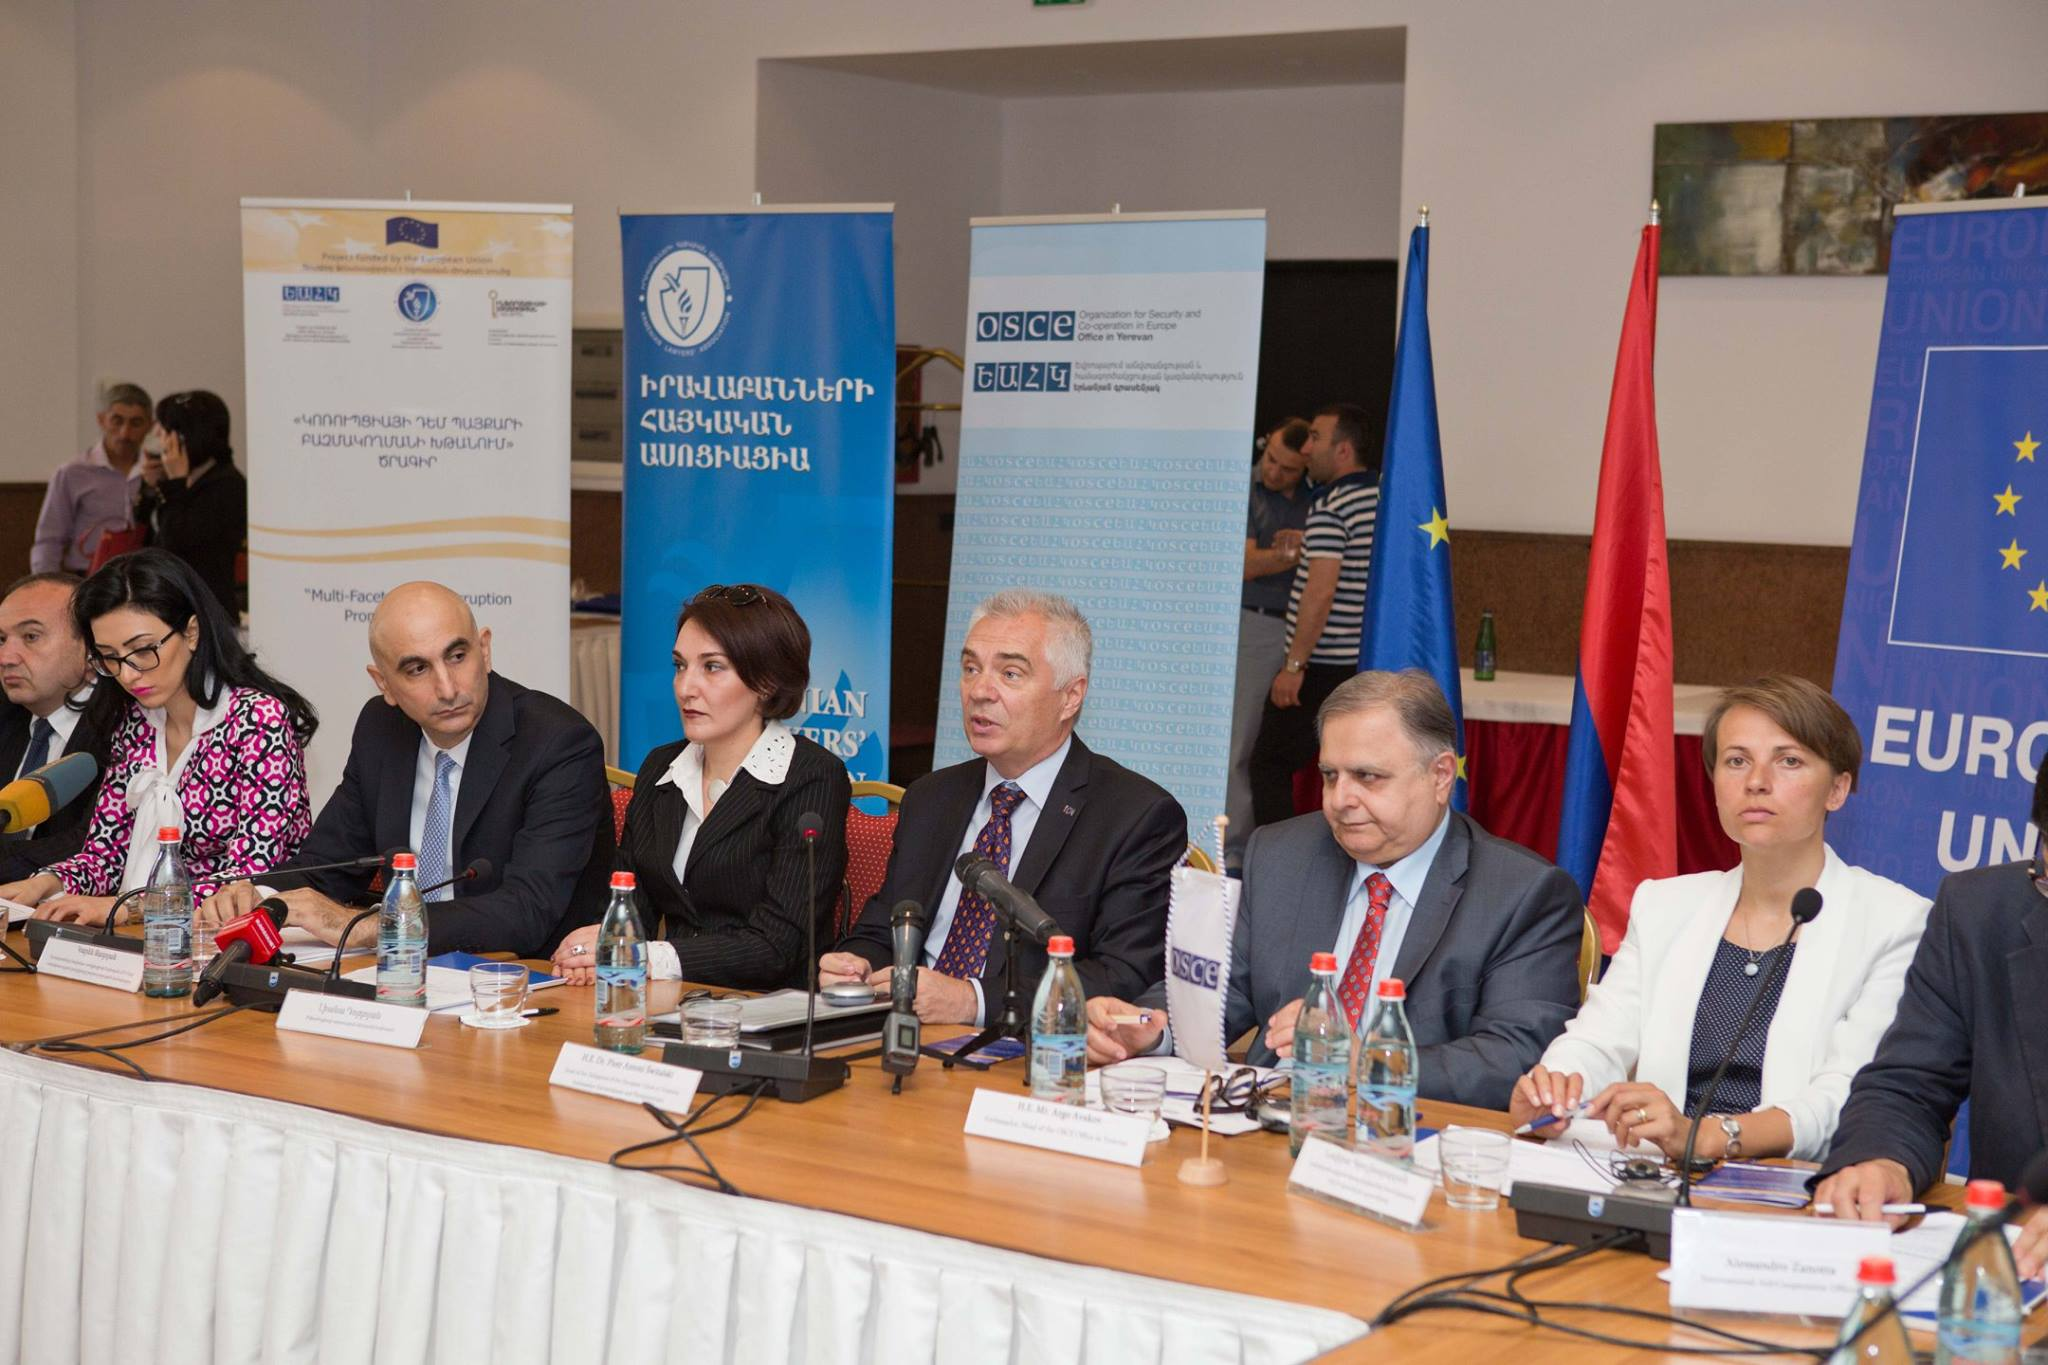 Government and CSOs discussed how to combat corruption in Armenia